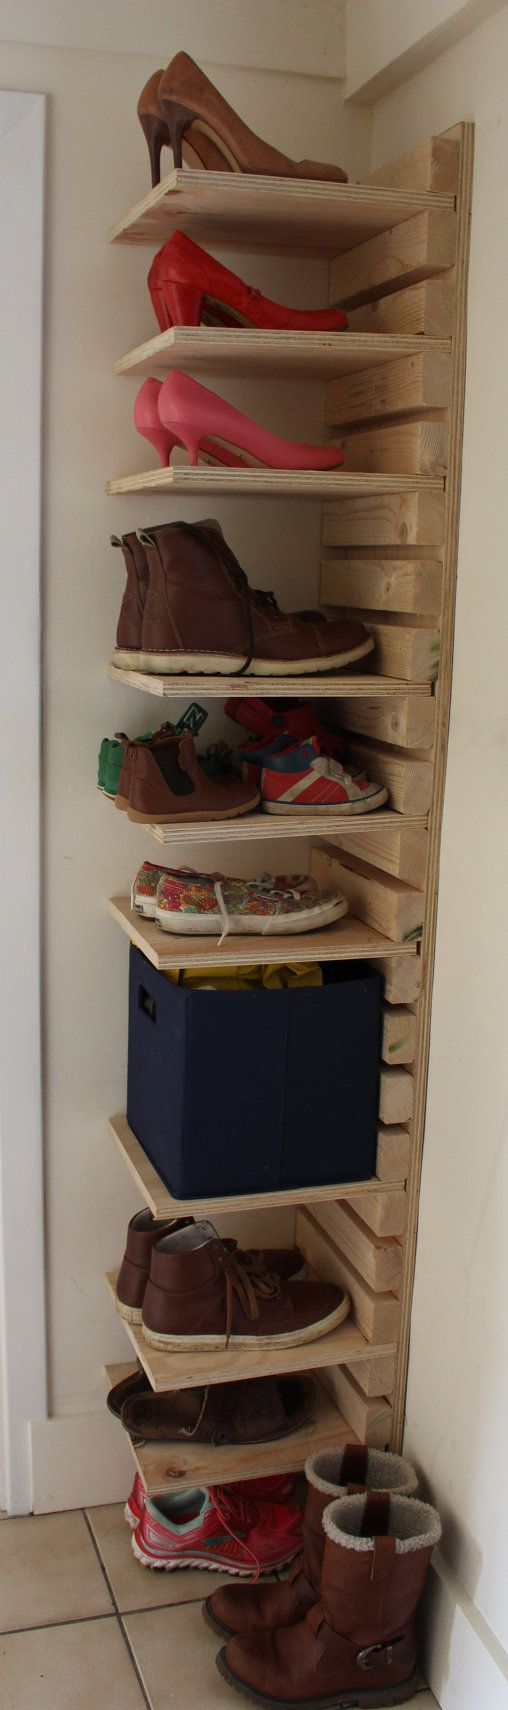 Adjustable wooden shoe rack Made to order 10 Shelf and 22 slat adjustable shoe  rack made. Diy Shoe ShelfDiy Closet ...